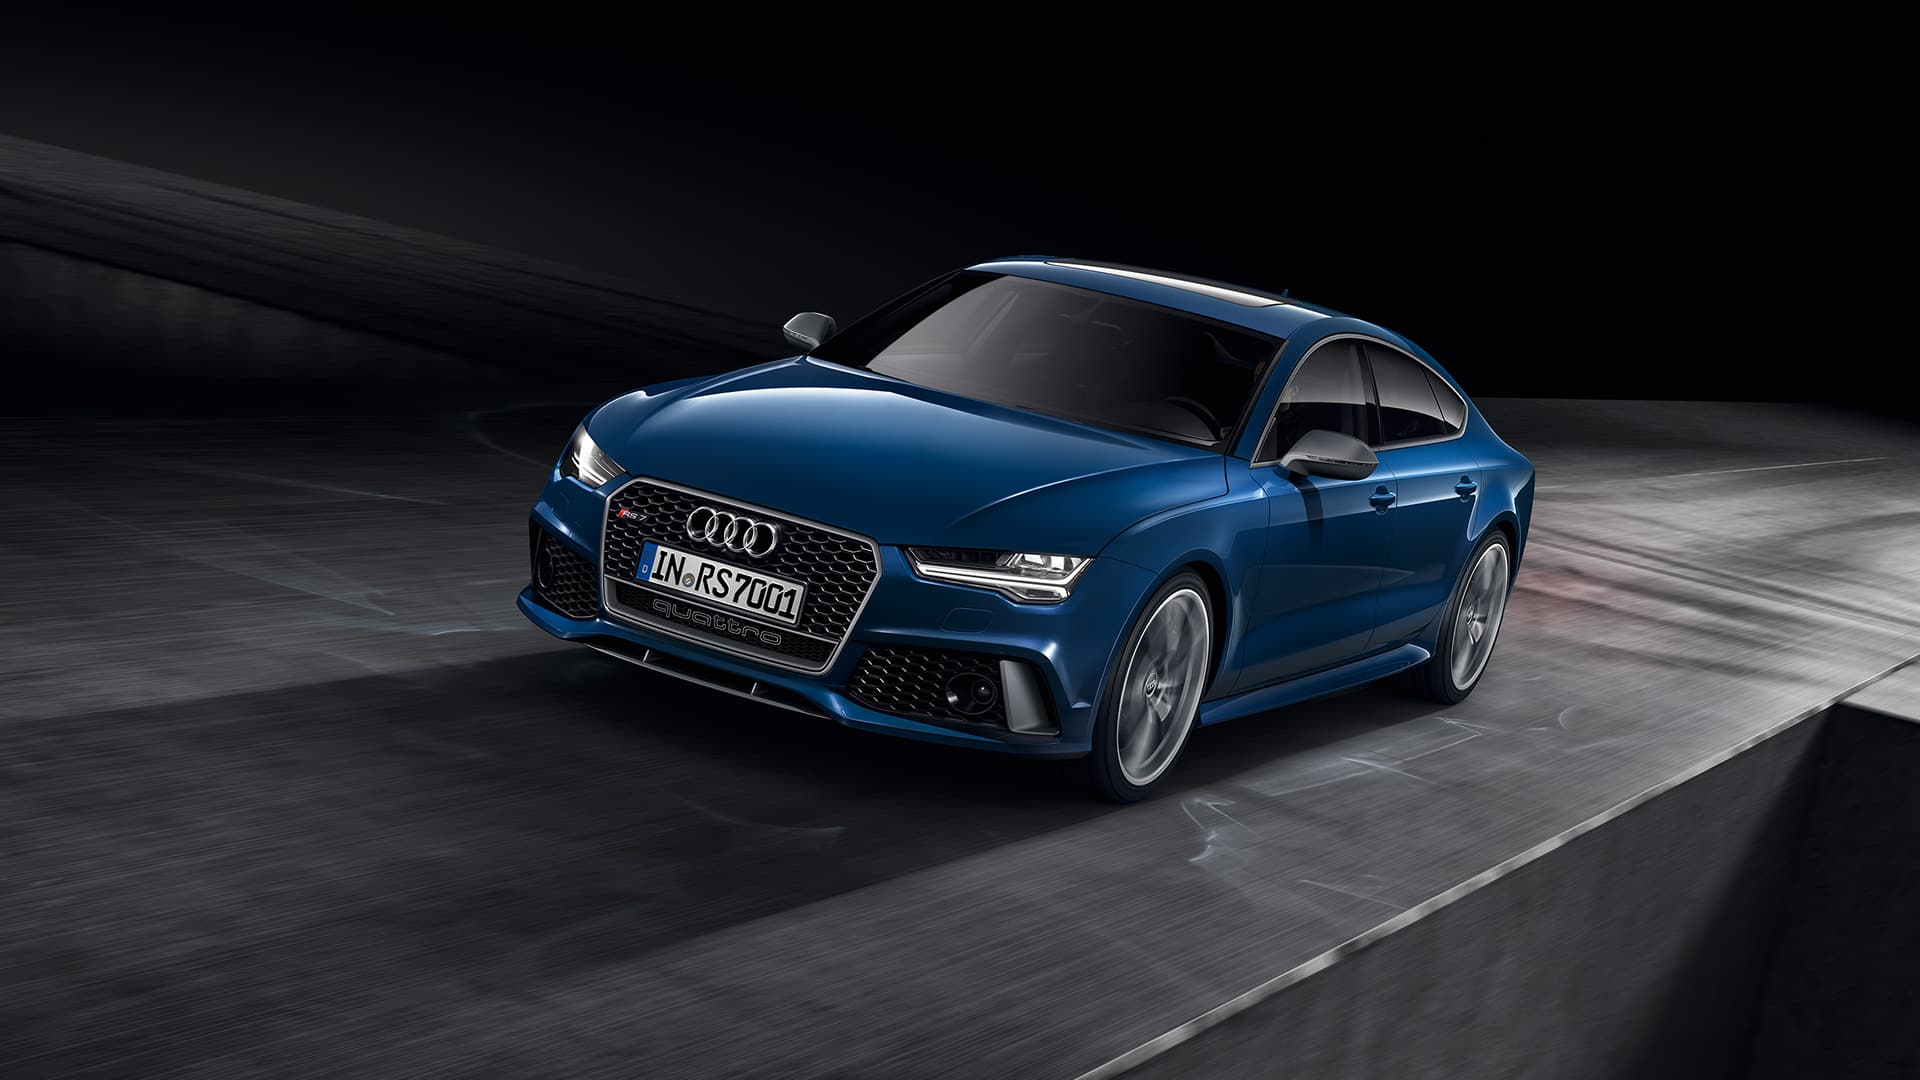 Audi Rs7 Sportback Formidable Performance Australia Rs 2017 With A Red Colour Play The 7